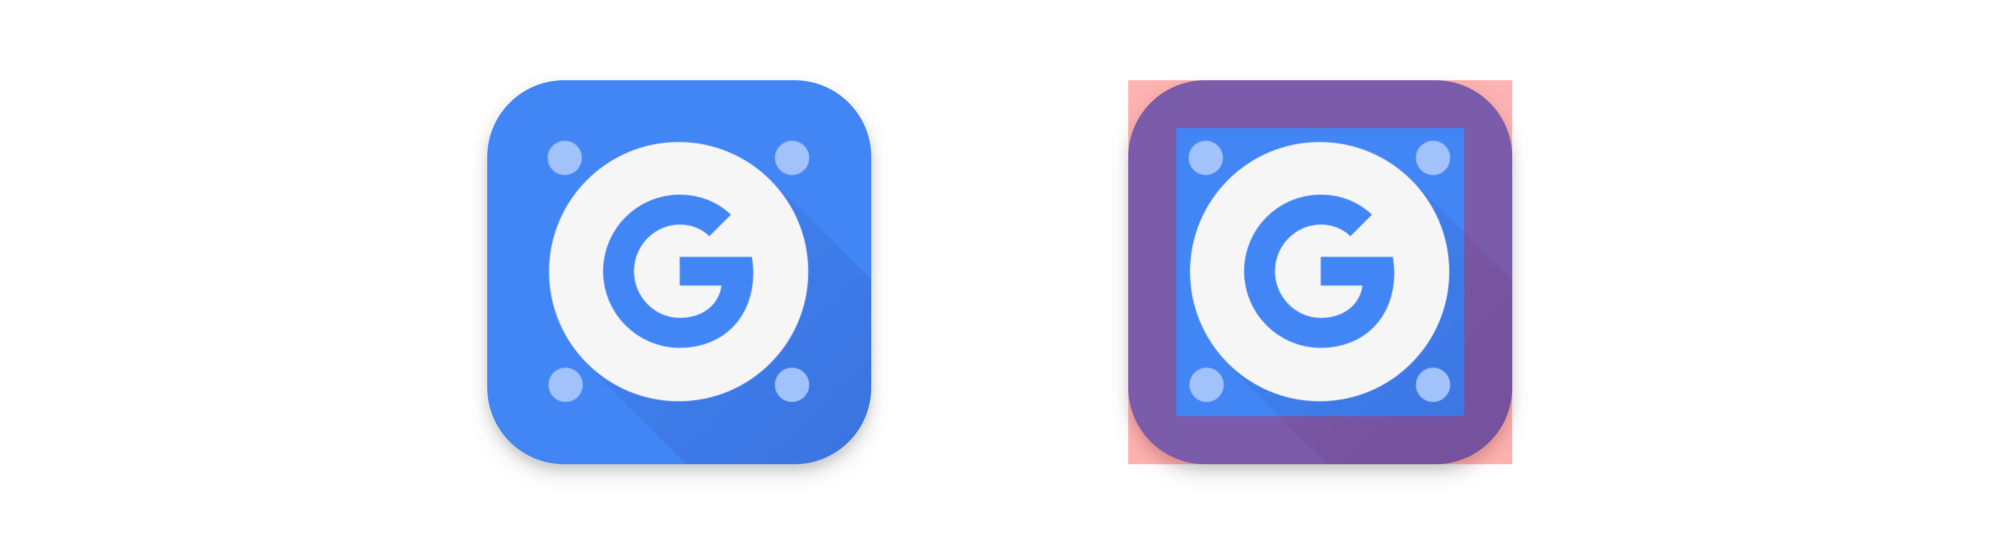 Important content in the Google Apps Device Policy icon stays within the safe area